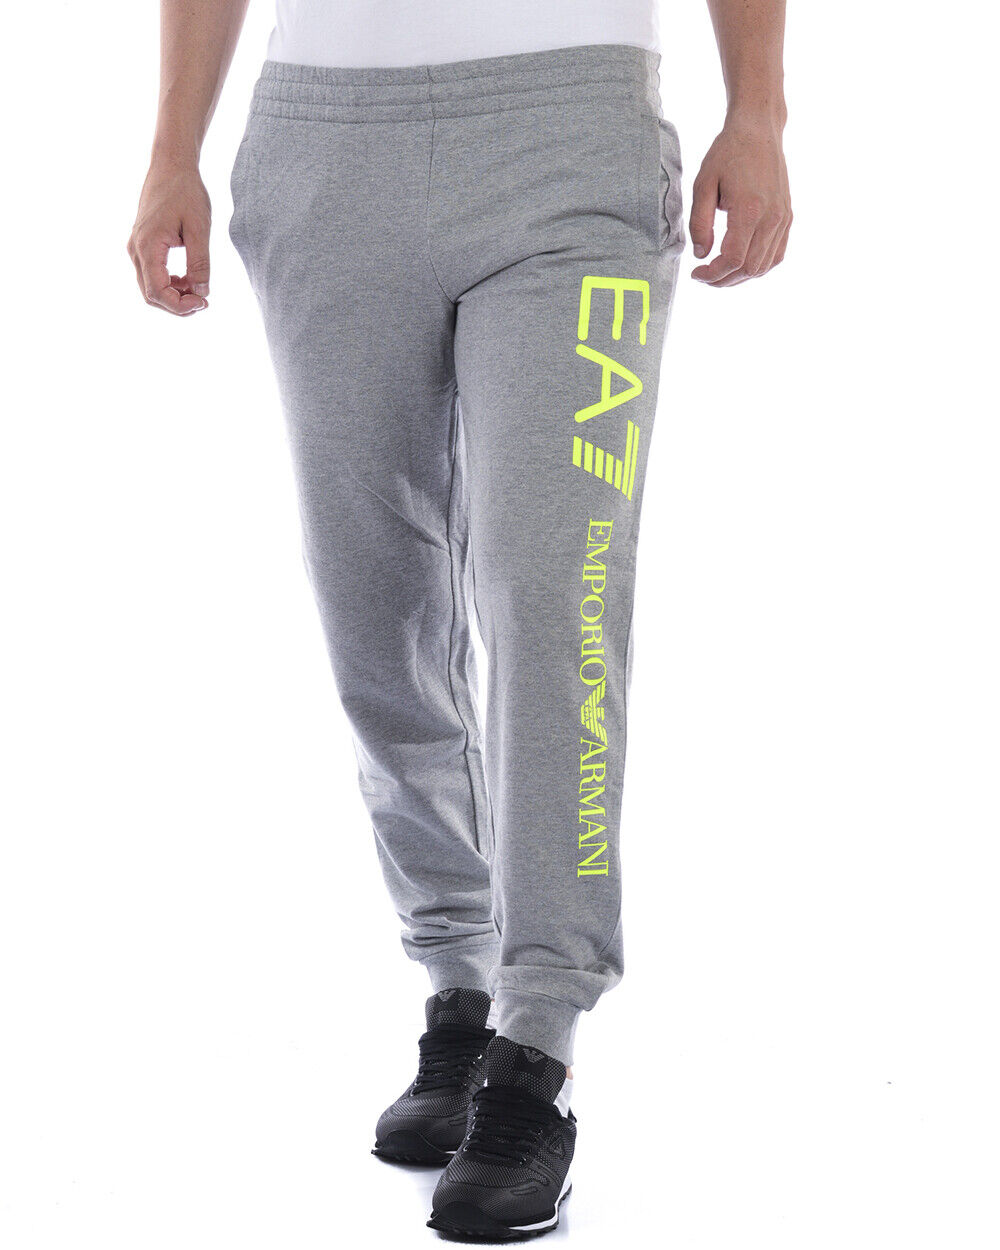 Emporio Armani Ea7 Tracksuit Cotton Man grau 8NPPC1PJ05Z 3902 Sz. S PUT OFFER